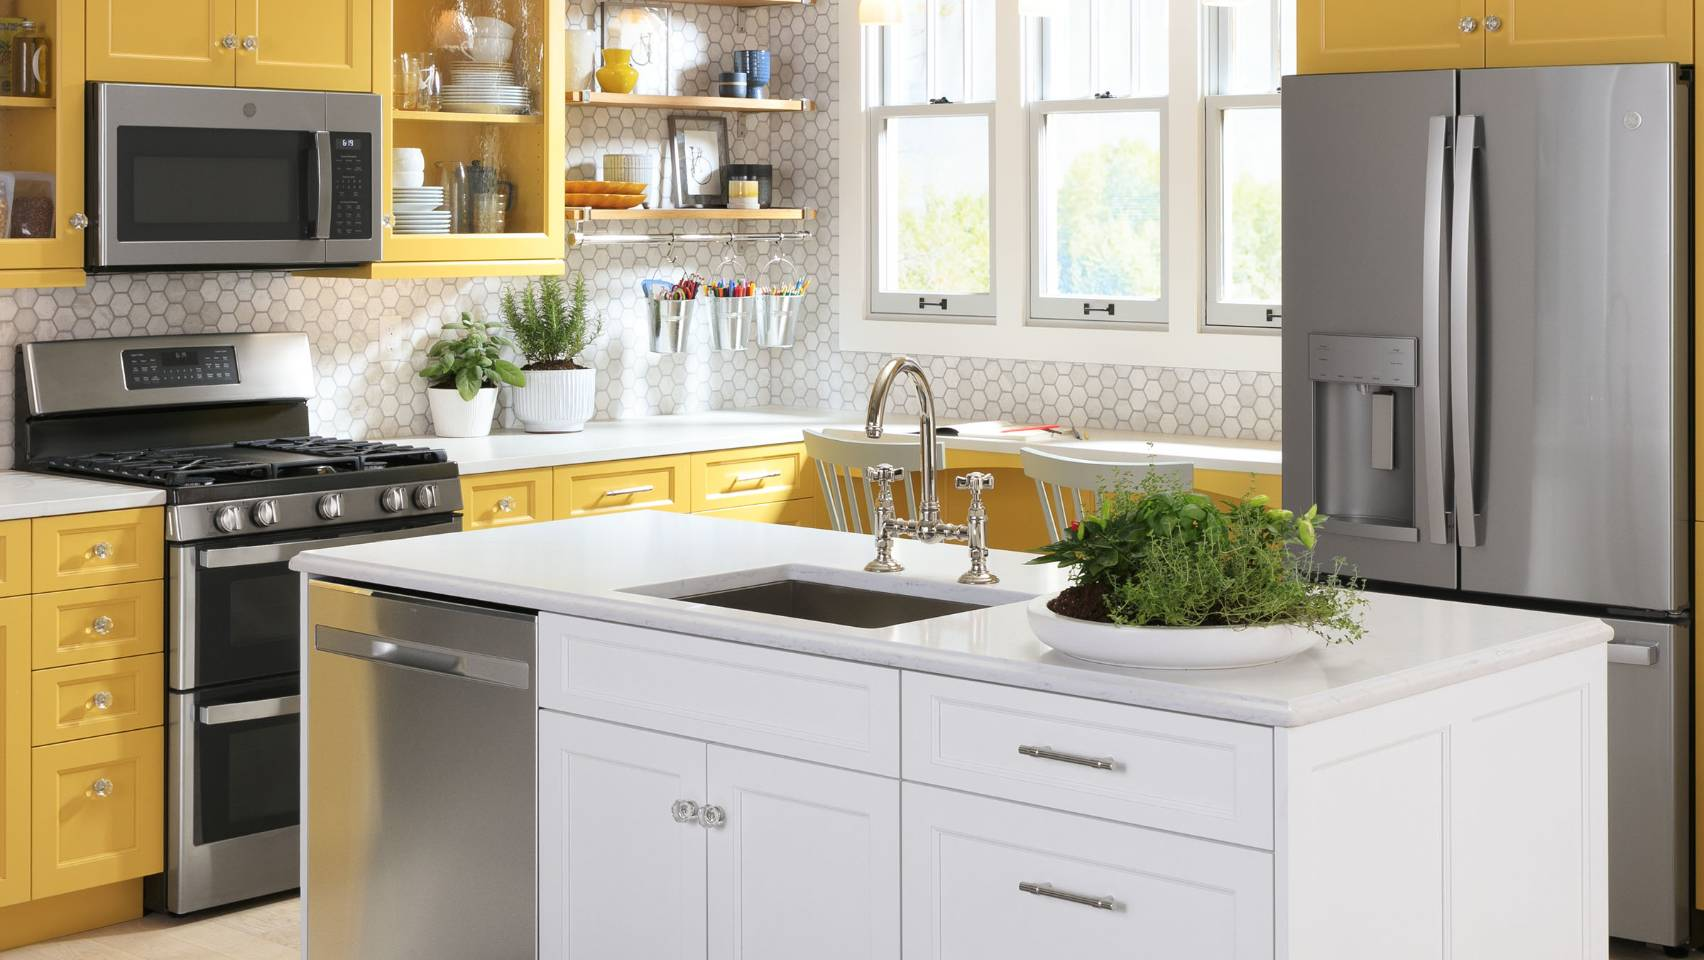 Yellow Cabinet Traditional Kitchen Design